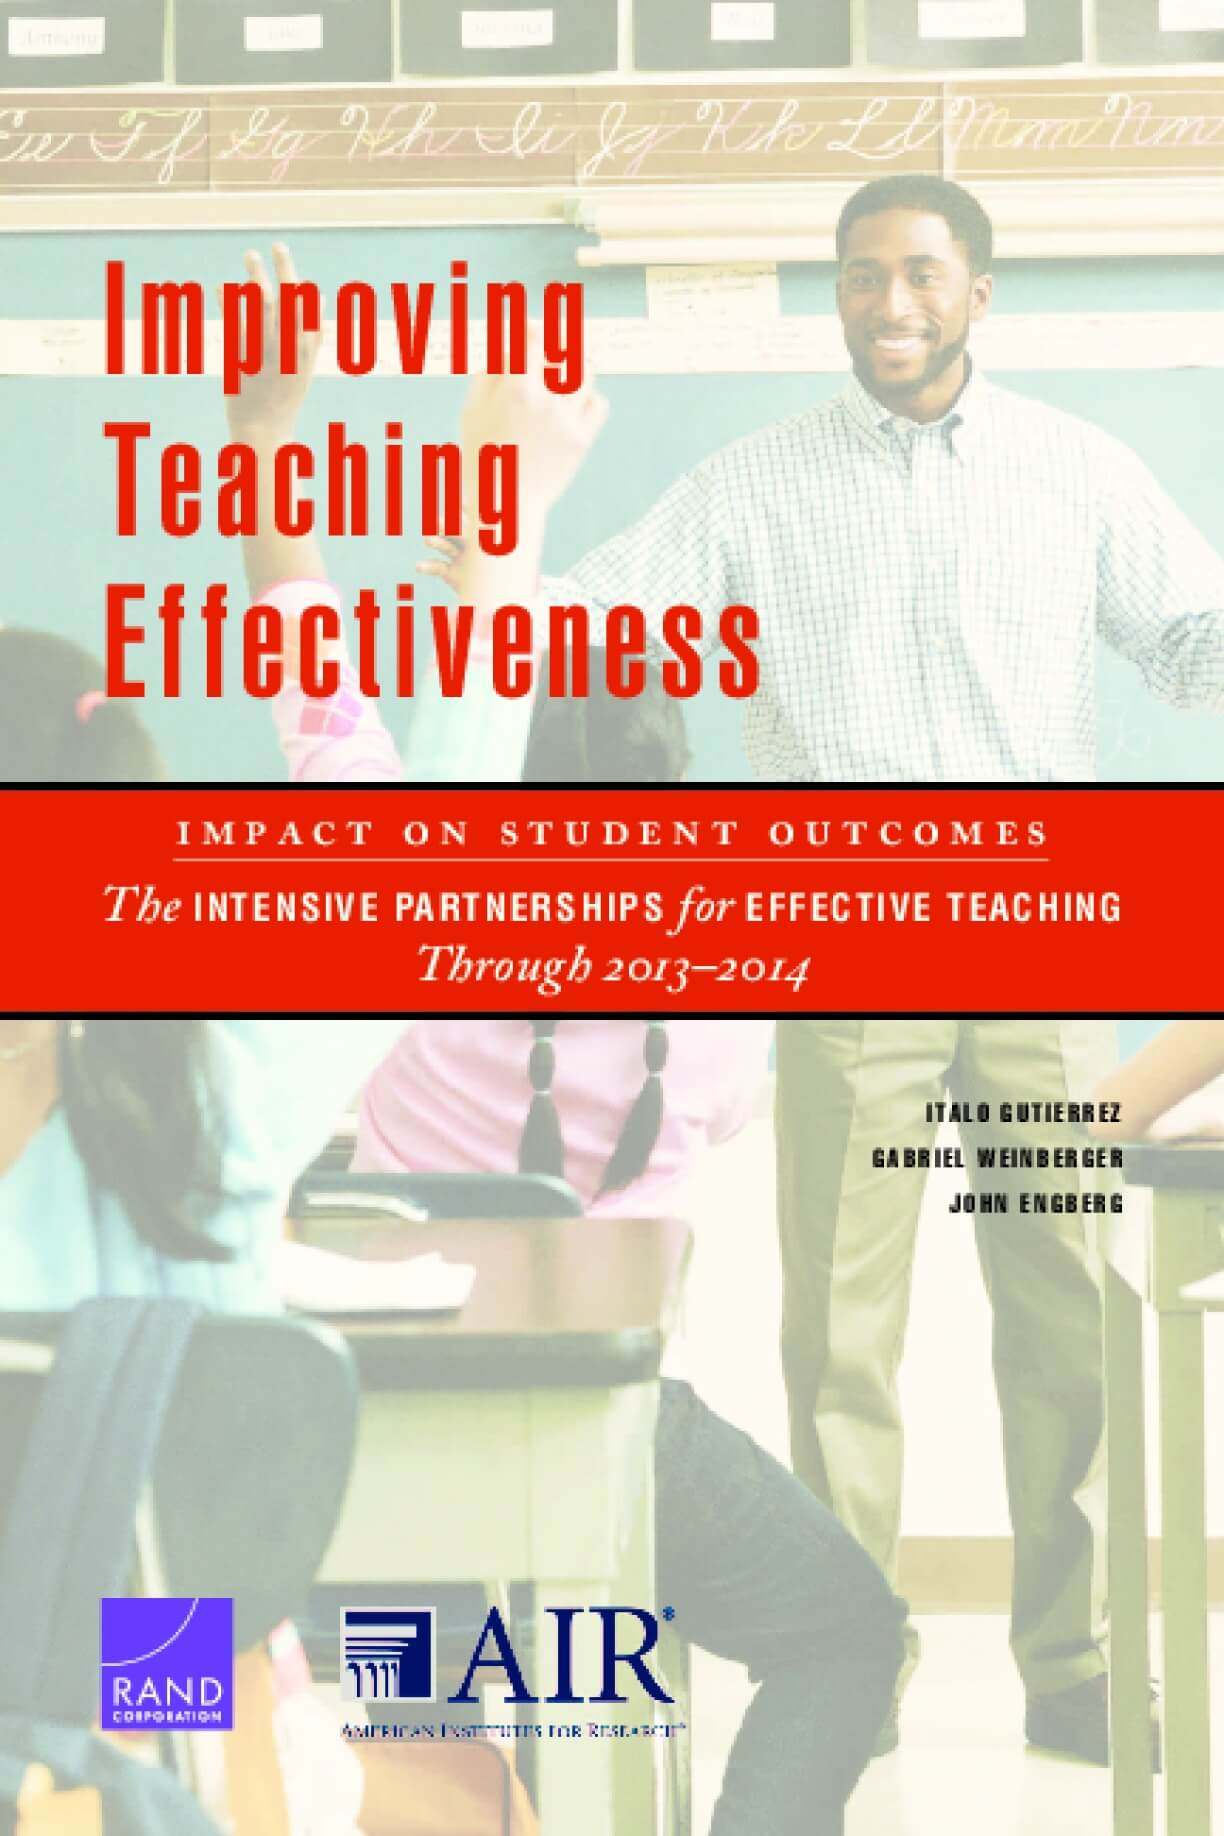 Improving Teaching Effectiveness: Impact on Student Outcomes, The Intensive Partnerships for Effective Teaching Through 2013–2014